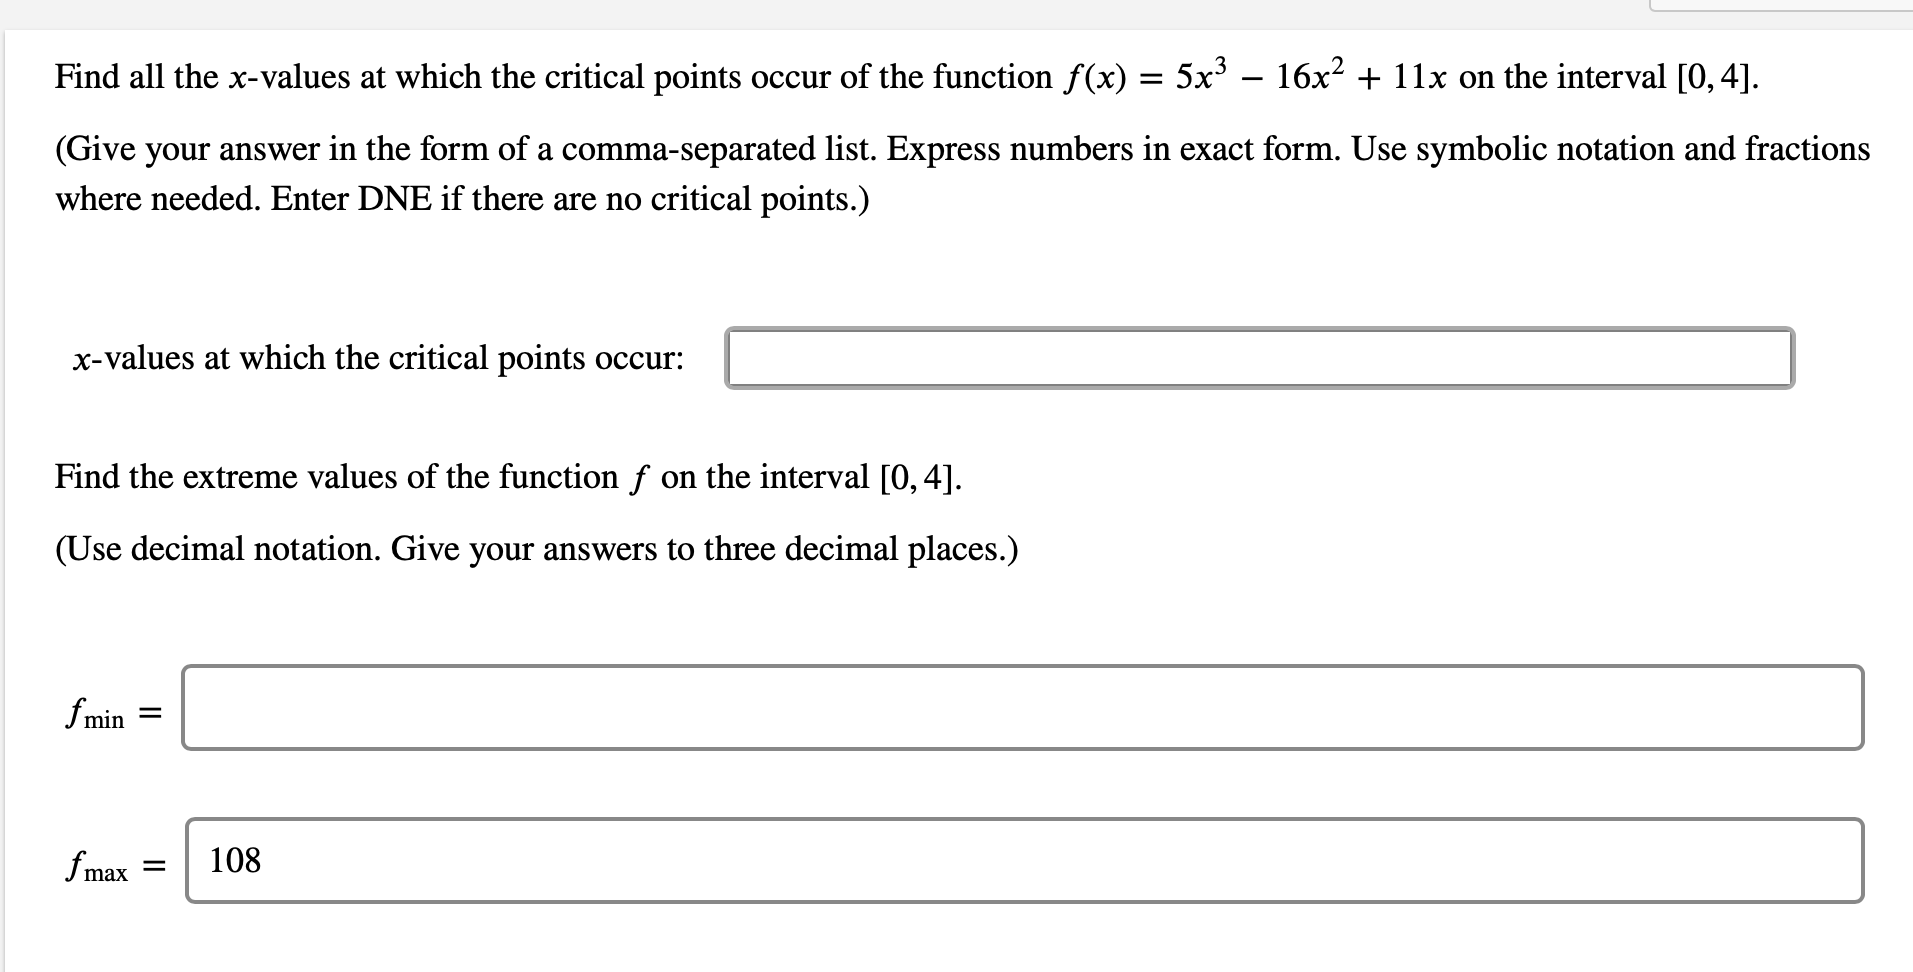 Find all the x-values at which the critical points occur of the function f(x) = 5x – 16x2 + 11x on the interval [0, 4]. (Give your answer in the form of a comma-separated list. Express numbers in exact form. Use symbolic notation and fractions where needed. Enter DNE if there are no critical points.) x-values at which the critical points occur: Find the extreme values of the function f on the interval [0, 4]. (Use decimal notation. Give your answers to three decimal places.) fmin = fmax 108